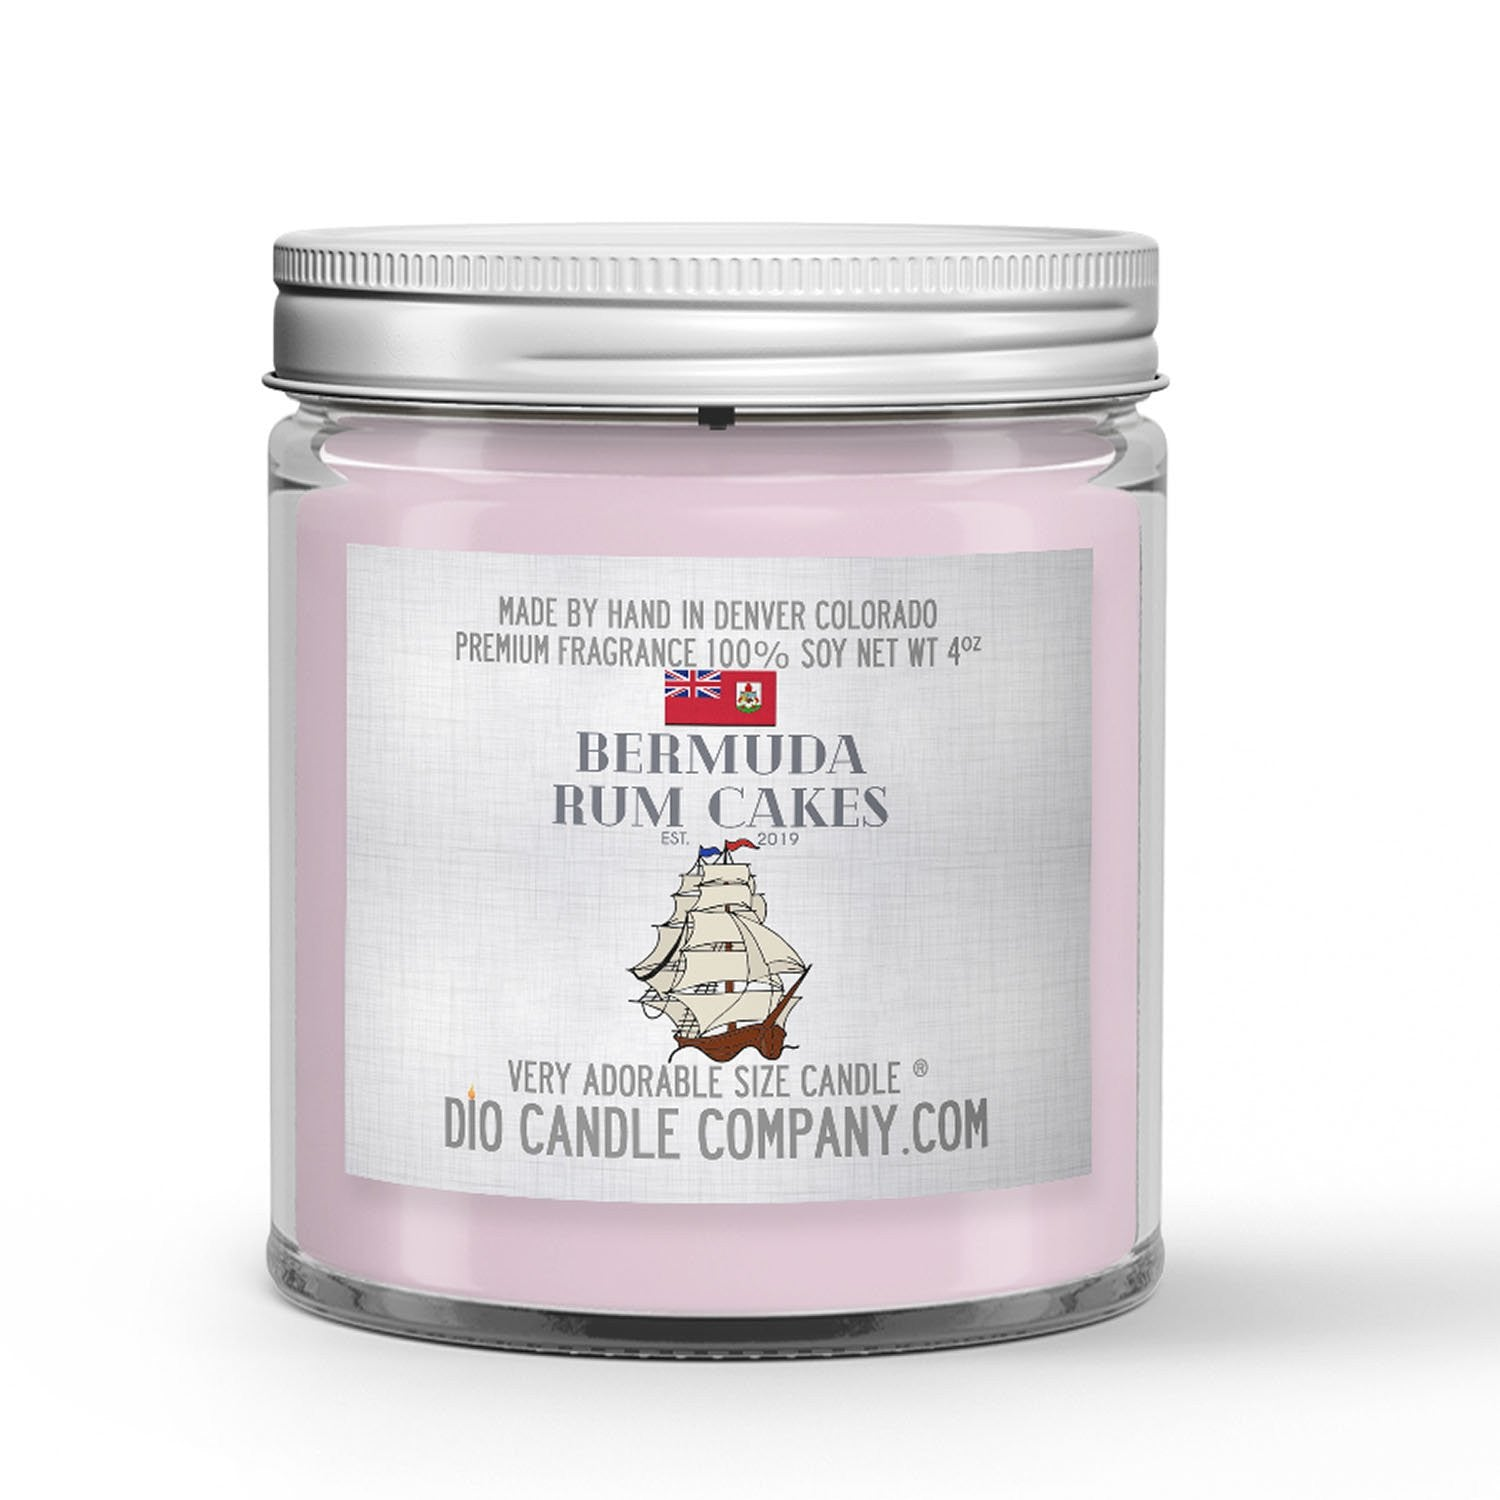 Bermuda Rum Cakes Candle - Black Seal Rum - Royal Icing - Cake - Sea Salt - 4oz Very Adorable Size Candle® - Dio Candle Company